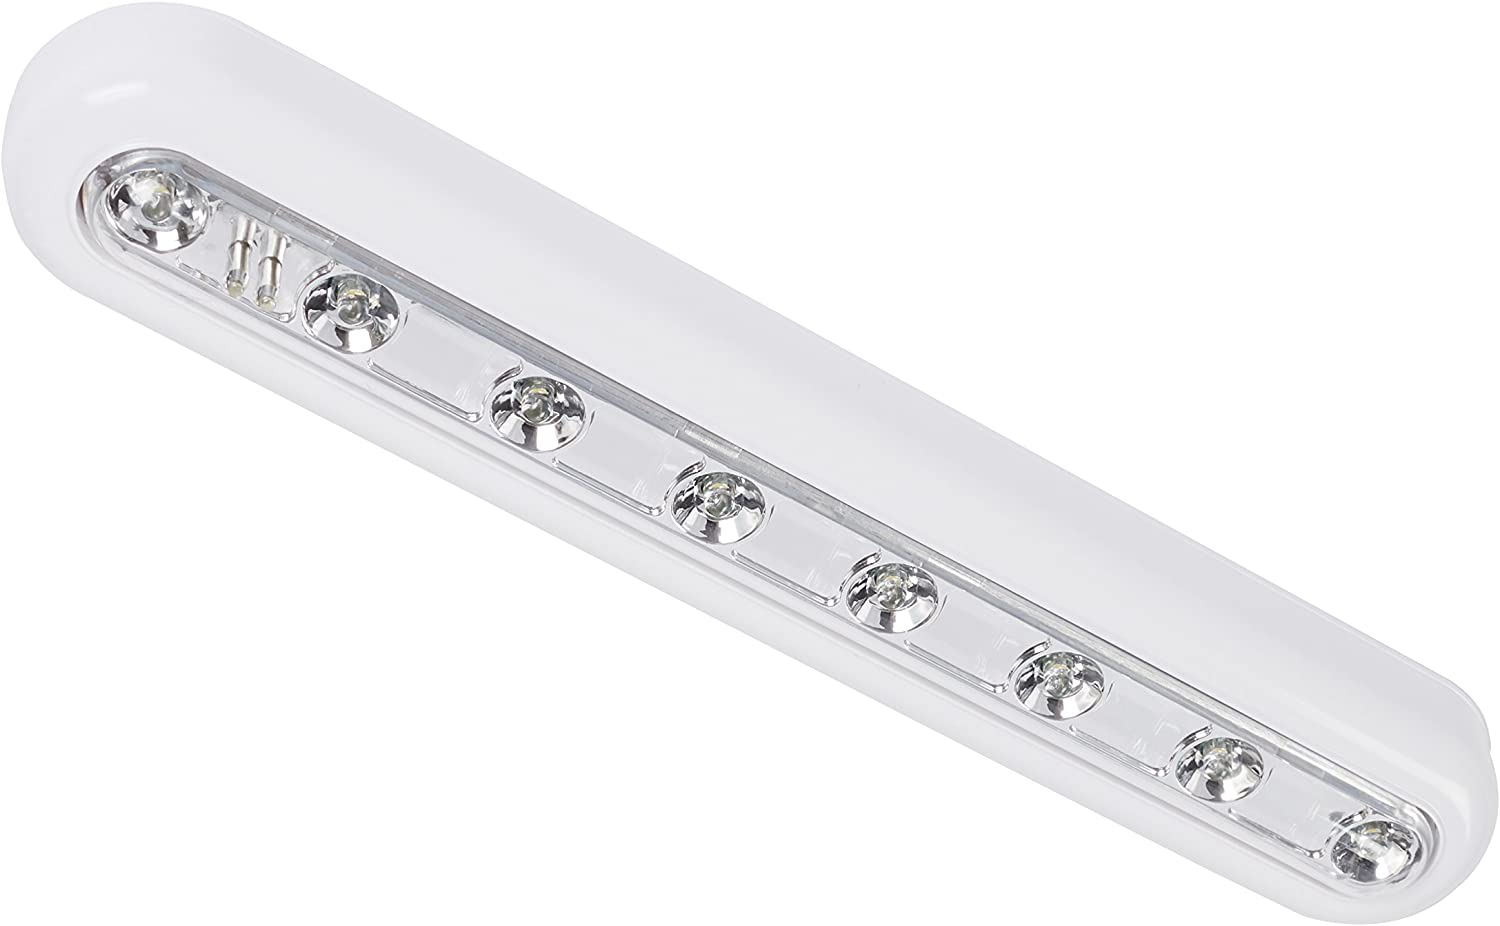 Lights4fun Pair of Warm White 8 LED Touch Operated Battery Cupboard Light with 3M Pads